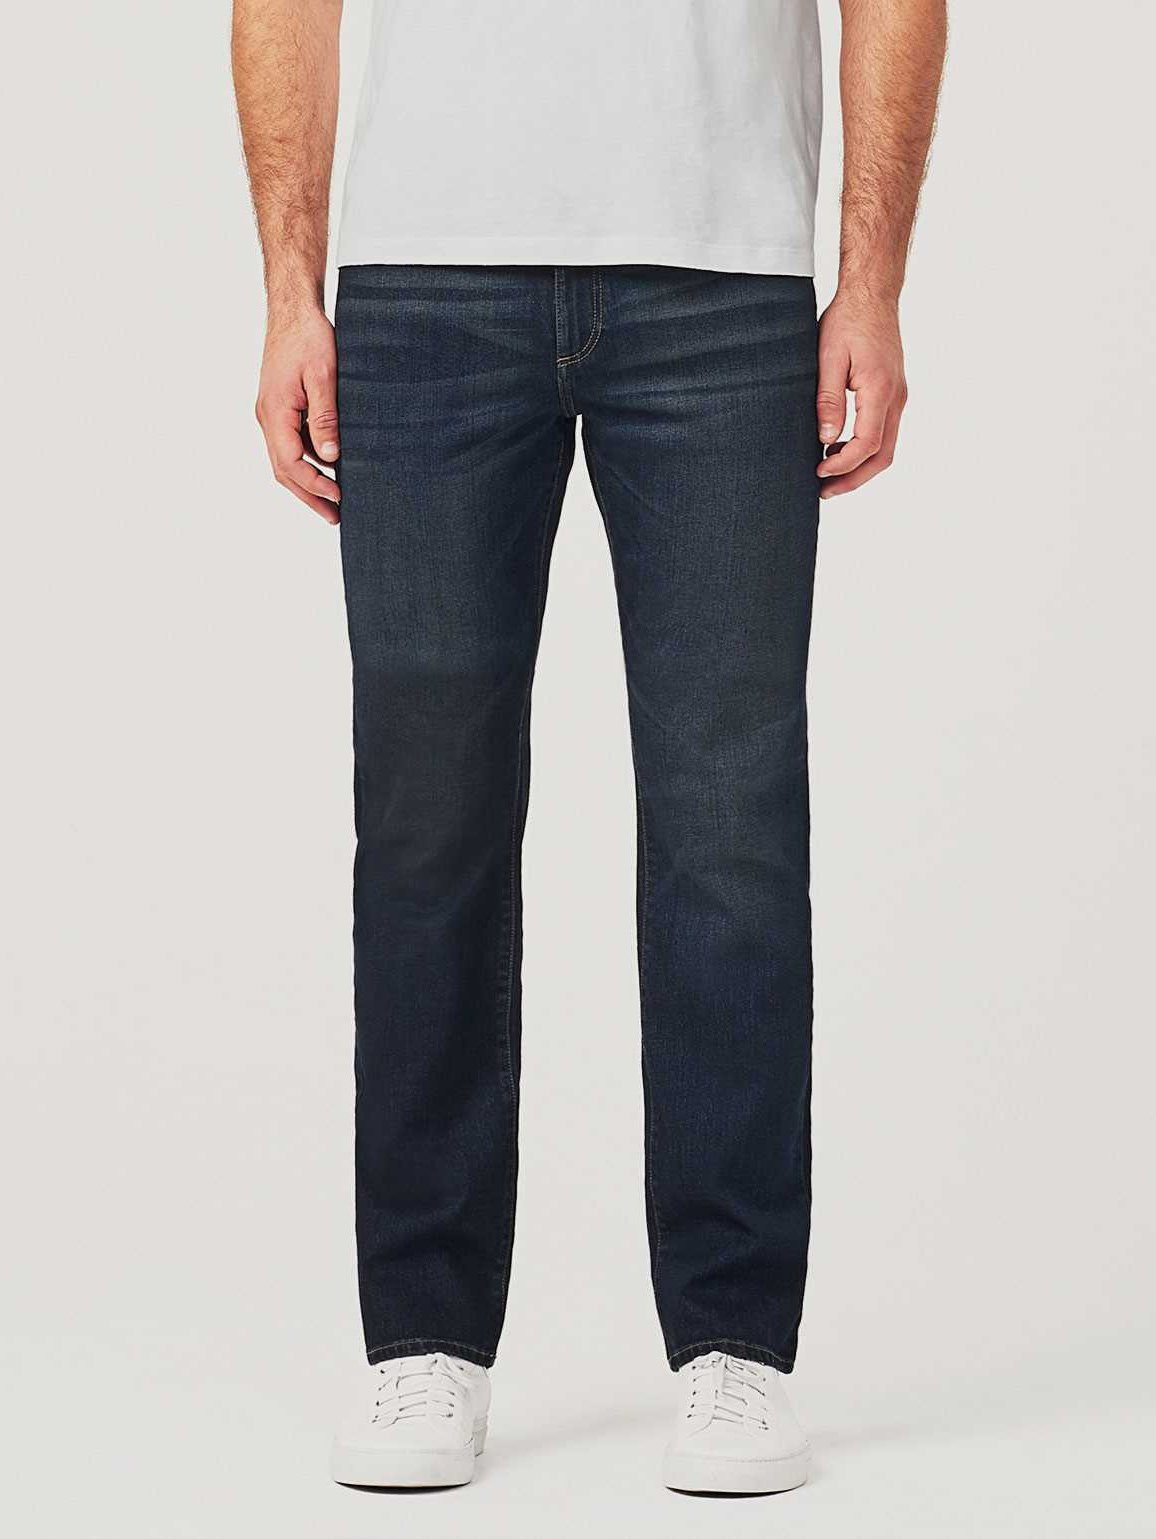 Men - Dark Blue Denim - Avery Modern Straight Supply - DL1961